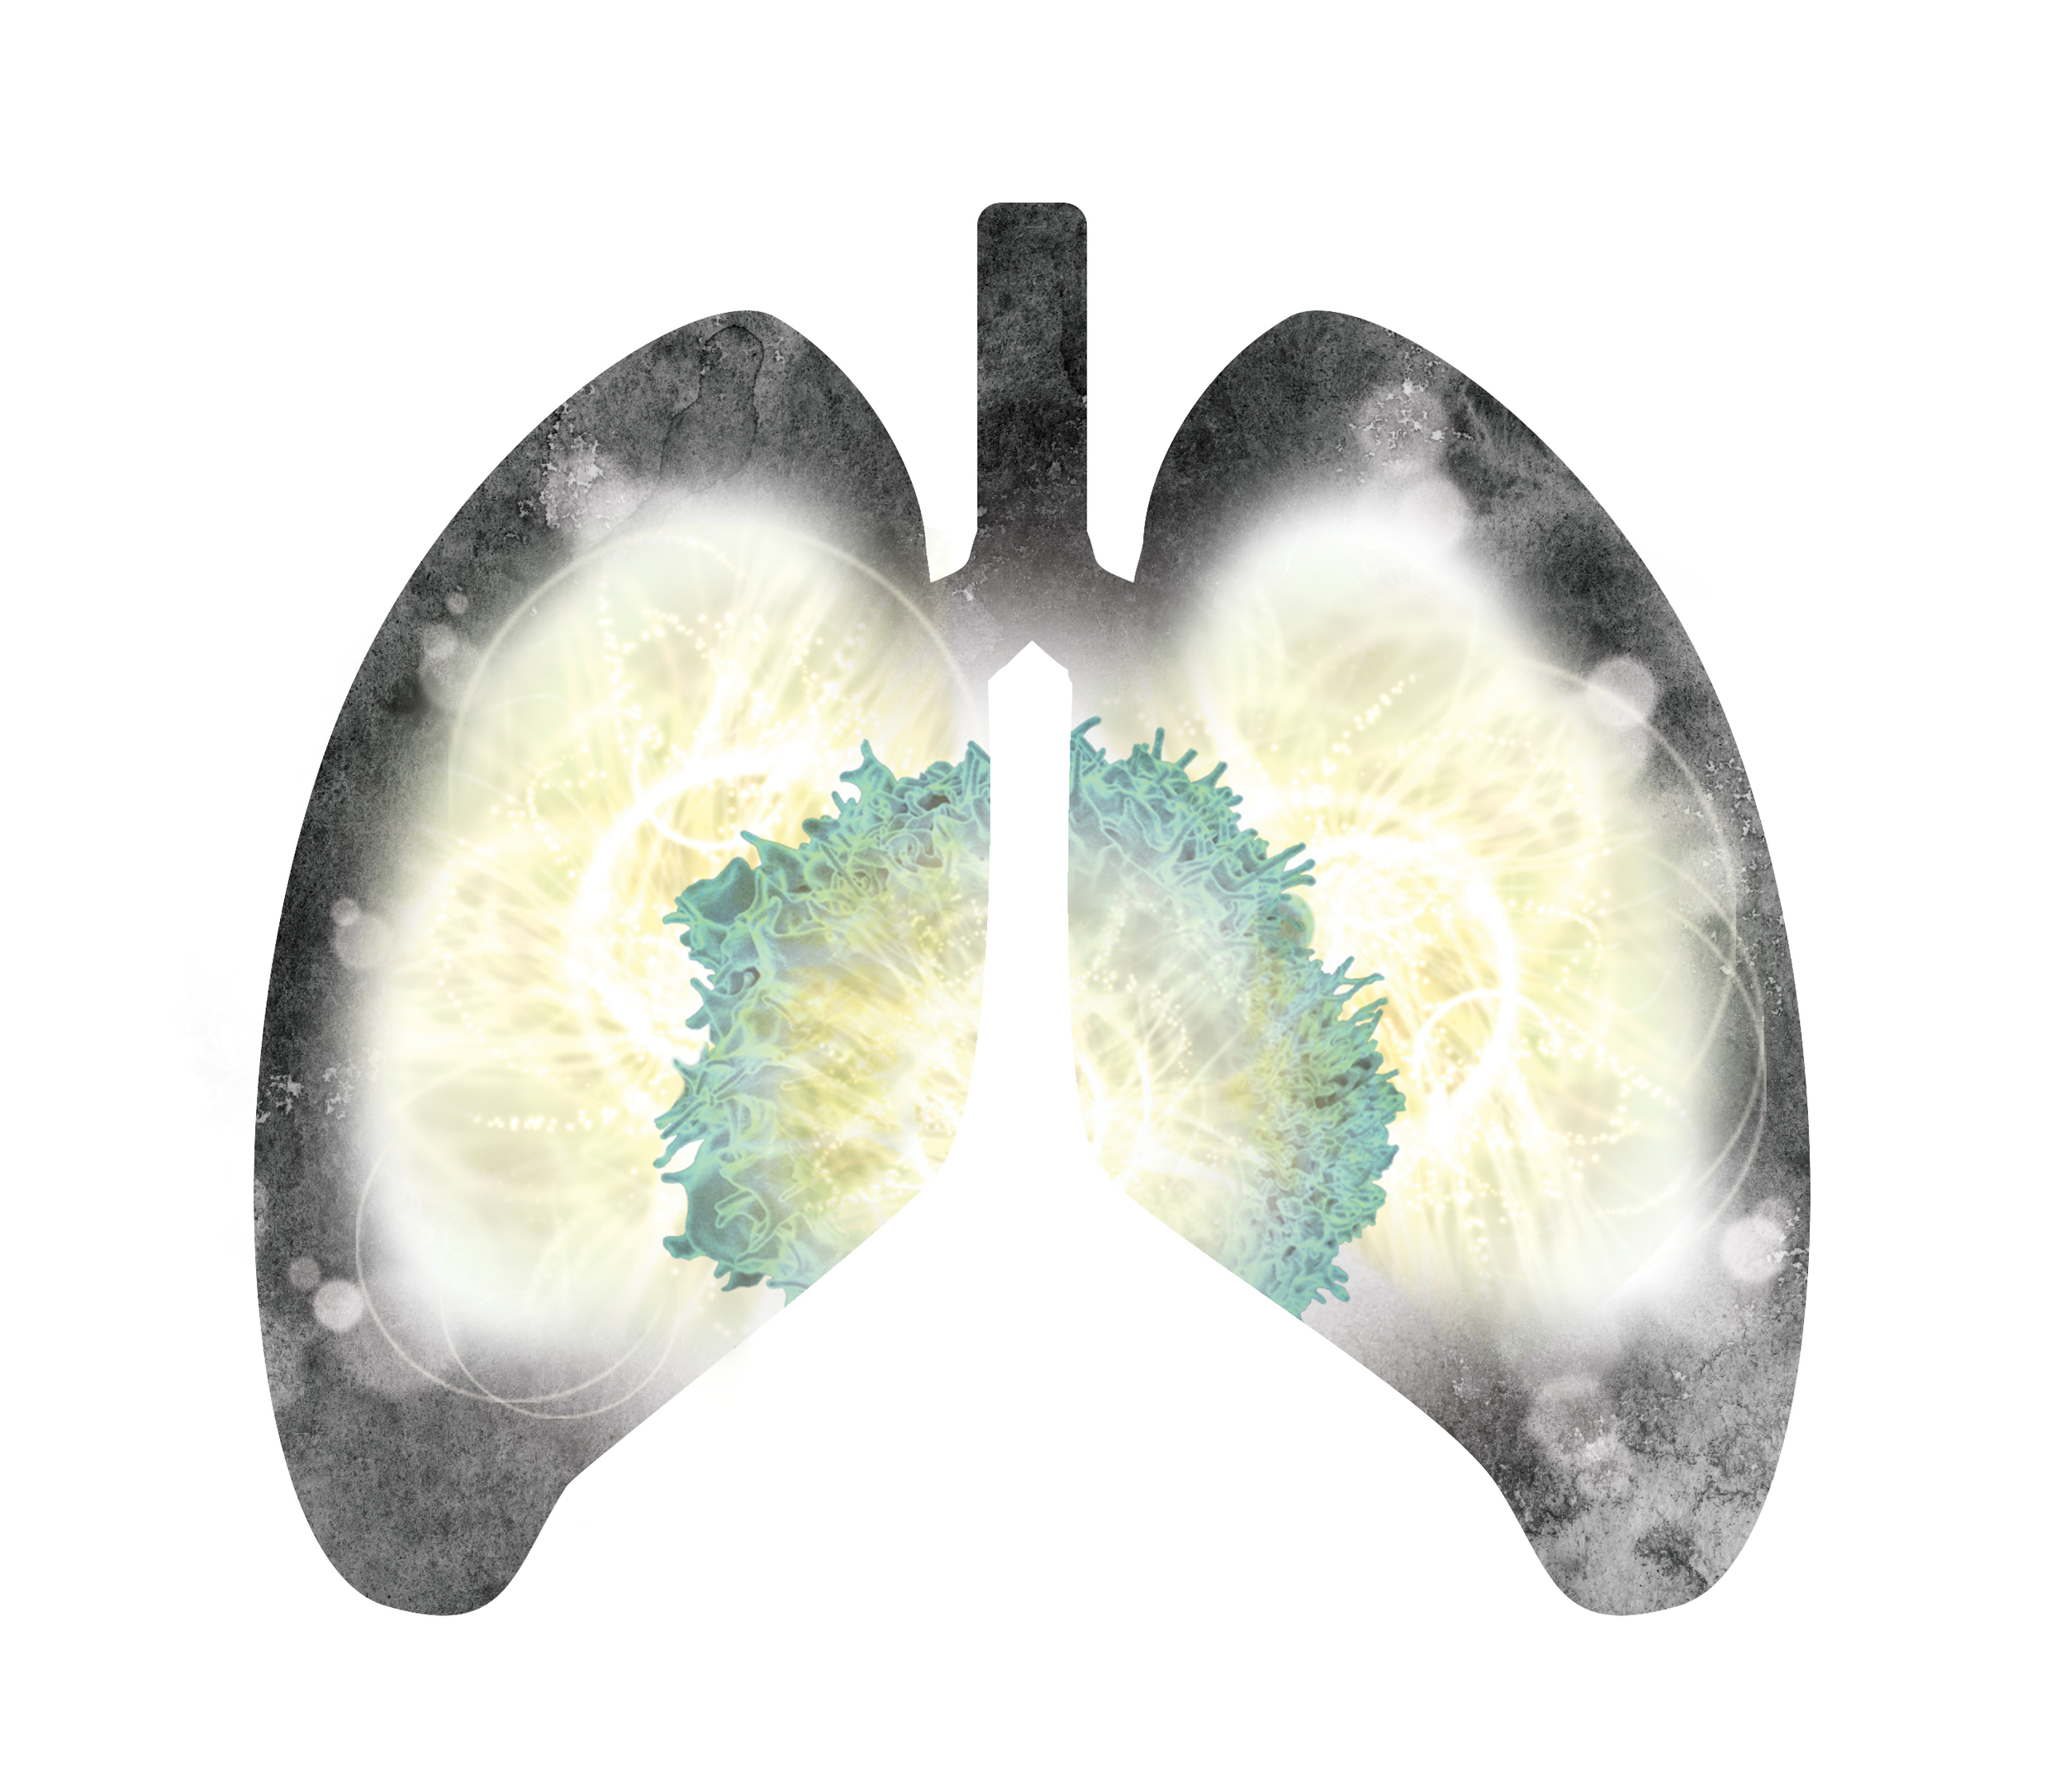 Concept art for a campaign for an immunotherapy drug used to treat lung cancer